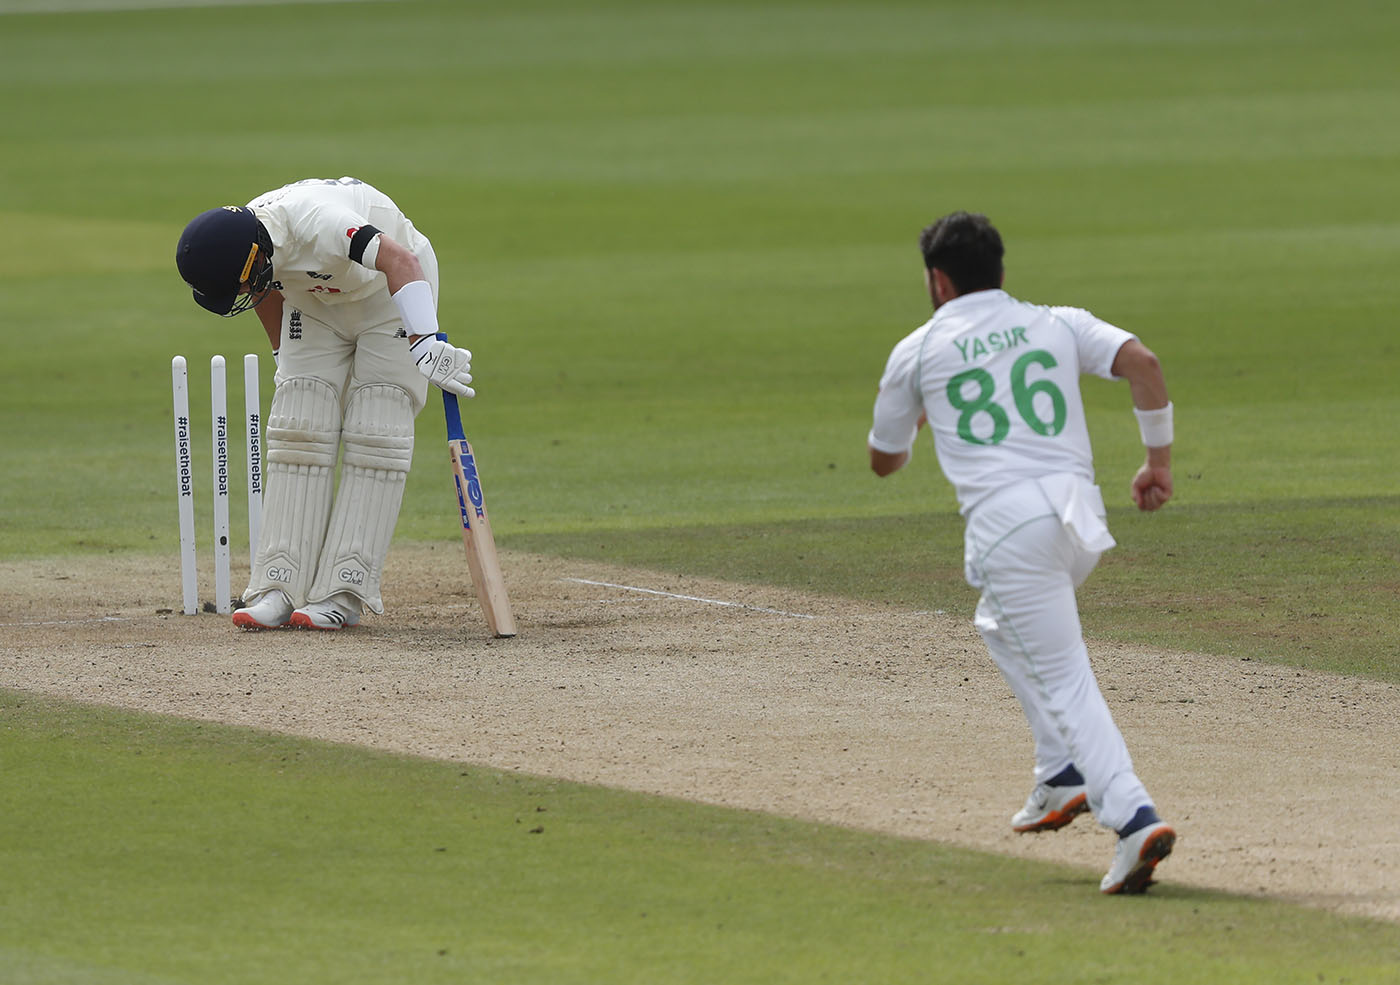 Ollie Pope Was Castled By Yasir Shah England V Pakistan 3rd Test Southampton 1st Day August 21 2020